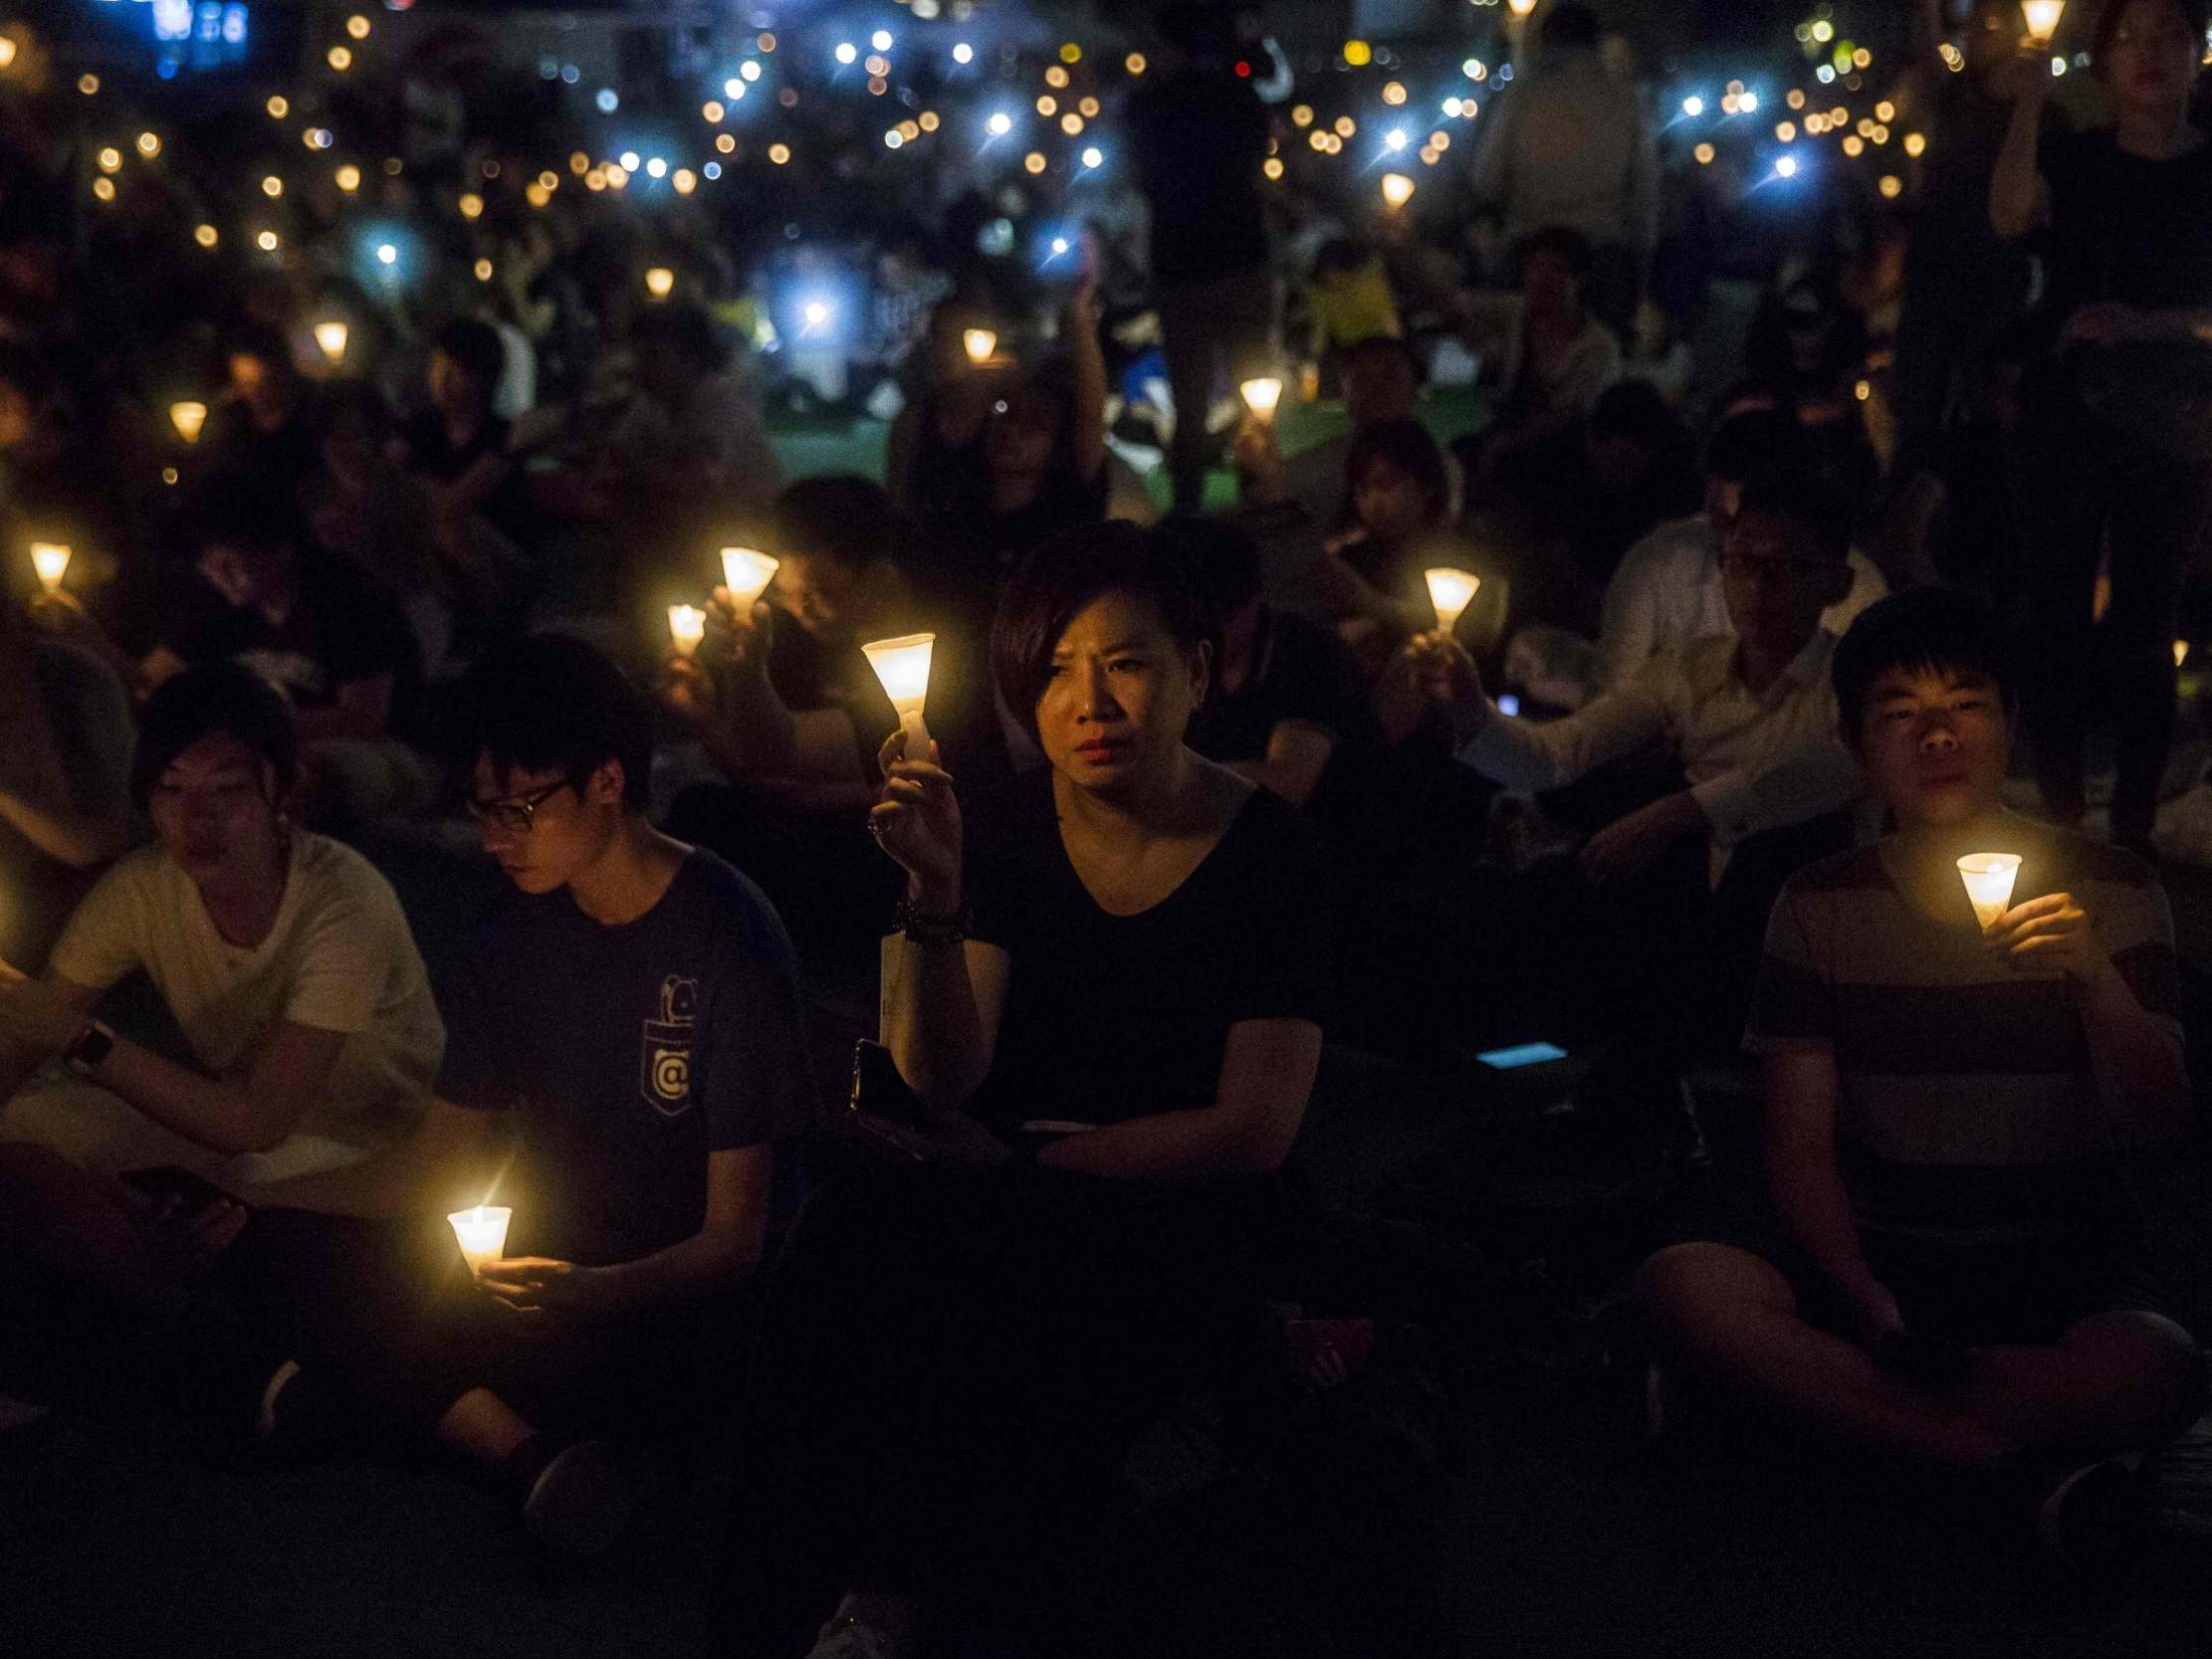 Hong Kong's annual Tiananmen Square vigil banned for first time amid growing concern over China's influence over territory